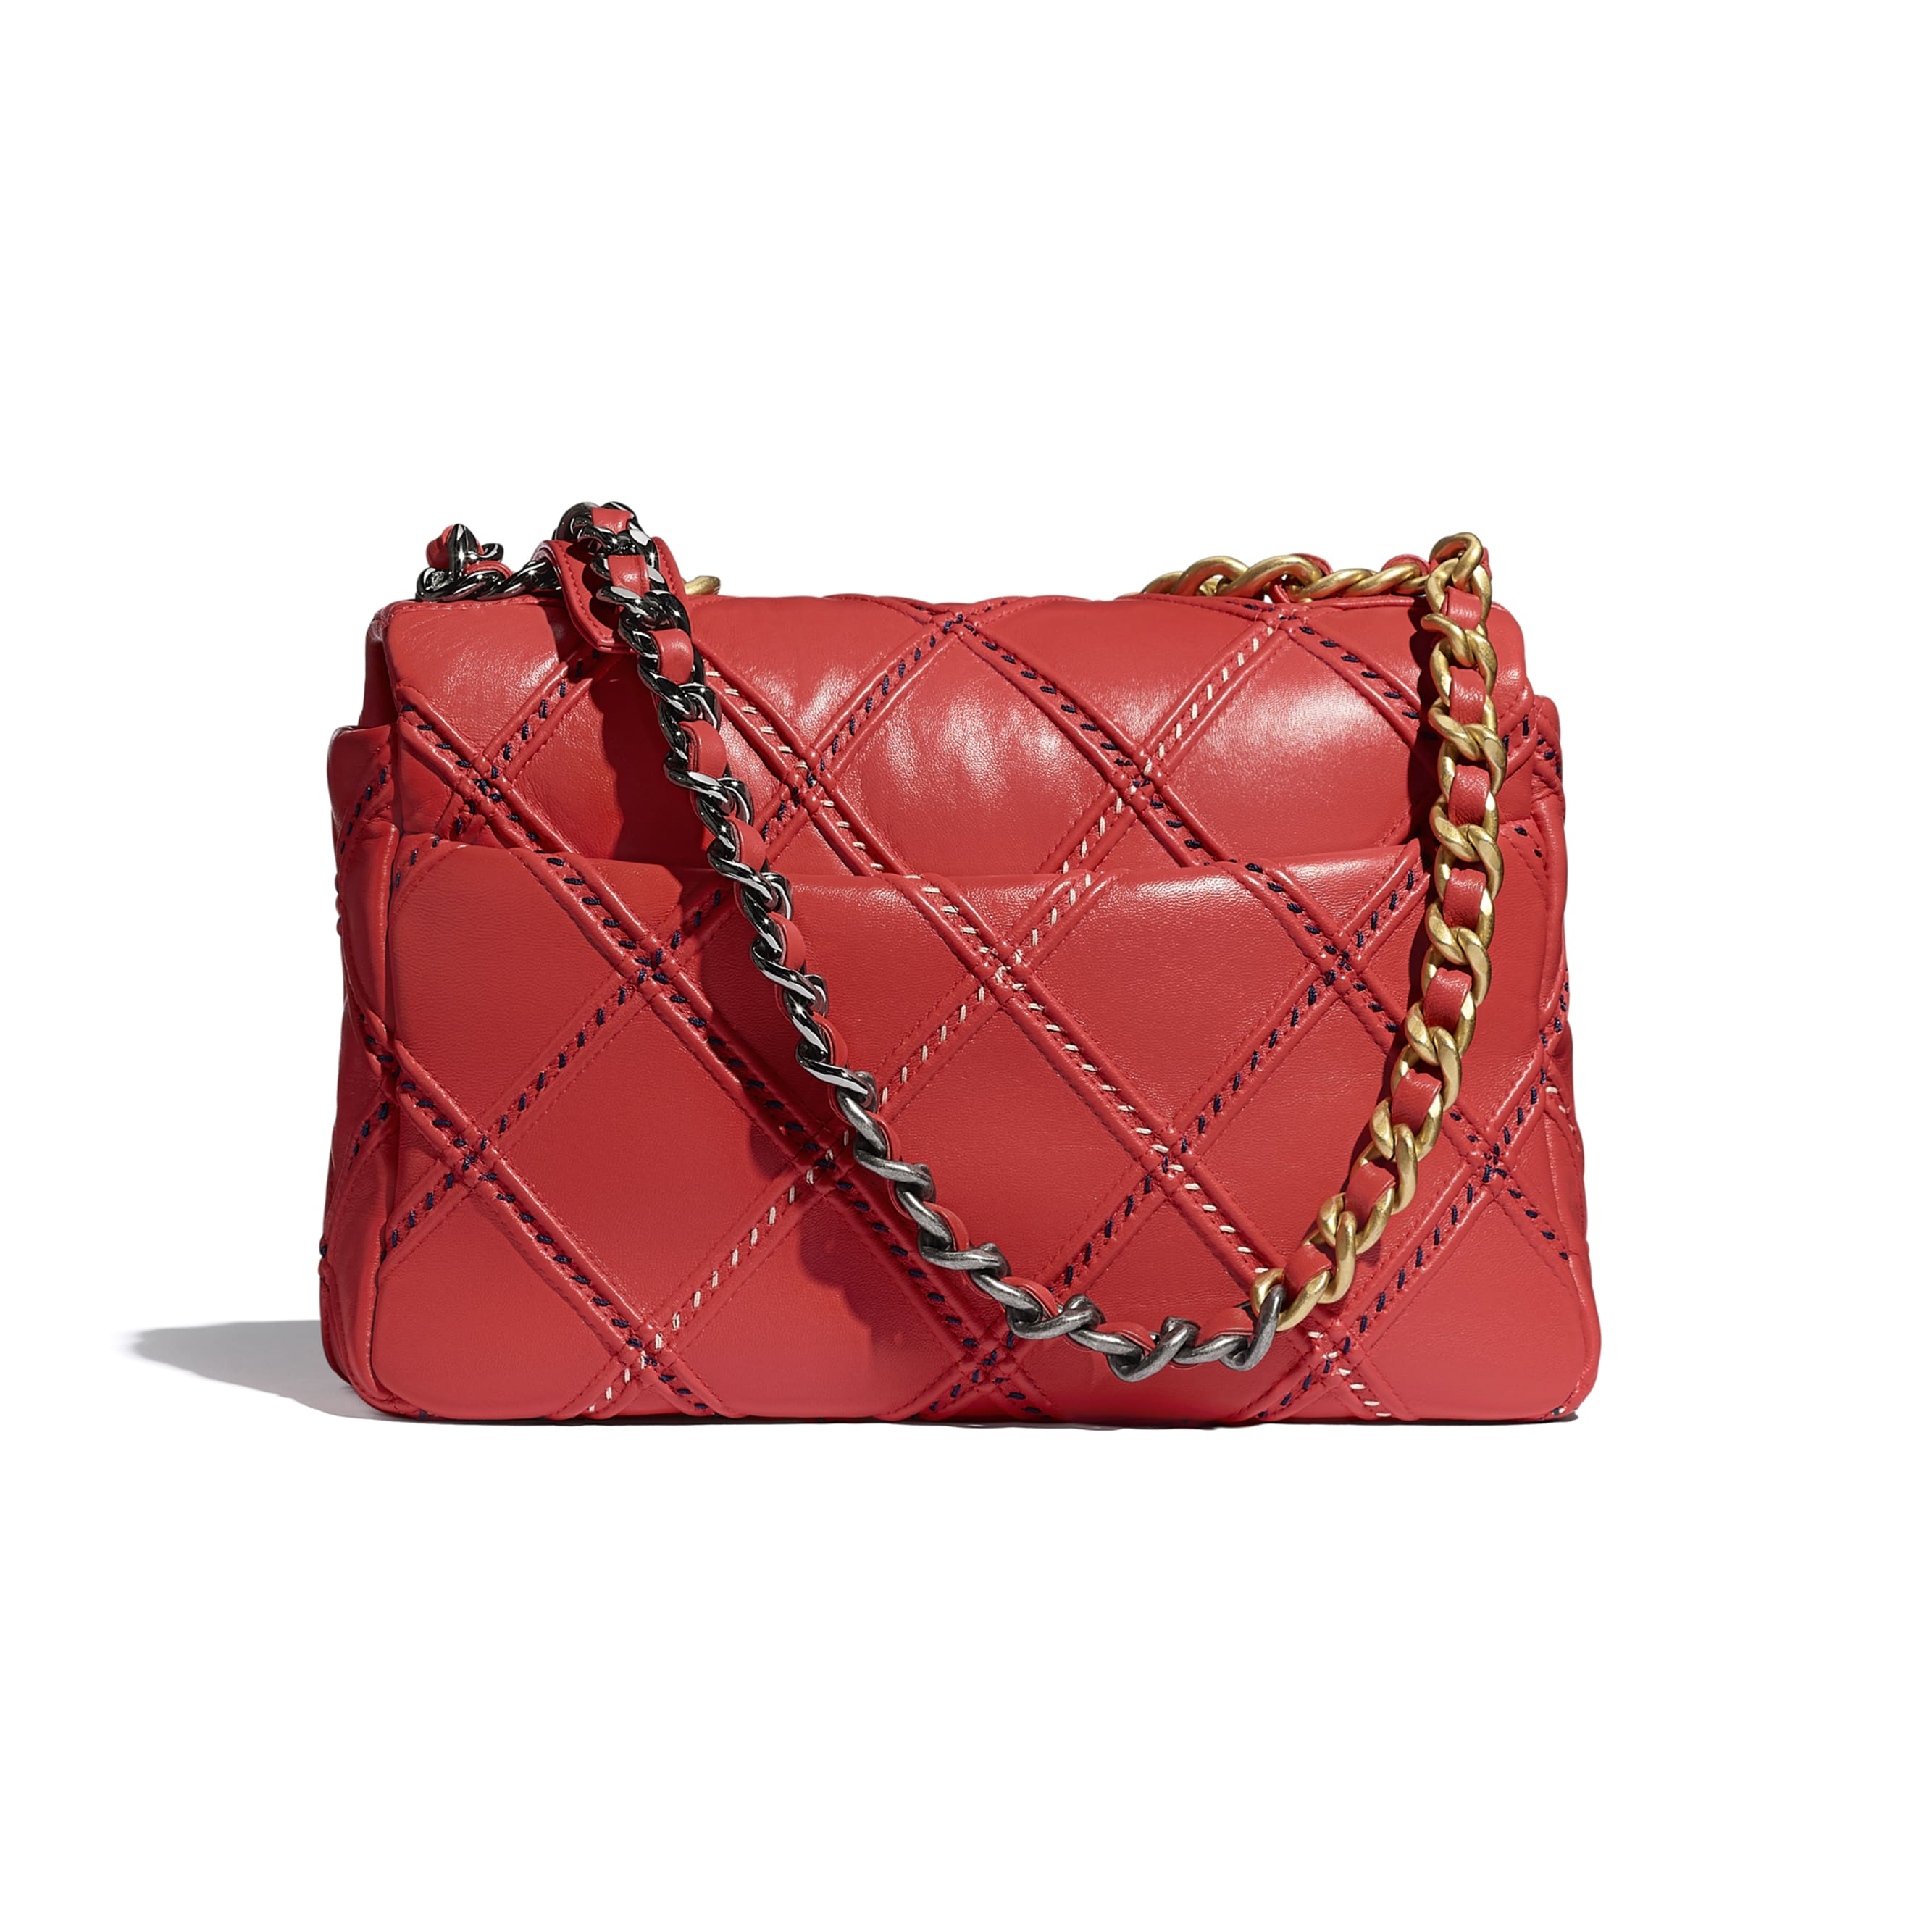 CHANEL 19 Flap Bag - Red - Lambskin, Mixed Fibres, Gold-Tone, Silver-Tone & Ruthenium-Finish Metal - CHANEL - Alternative view - see standard sized version